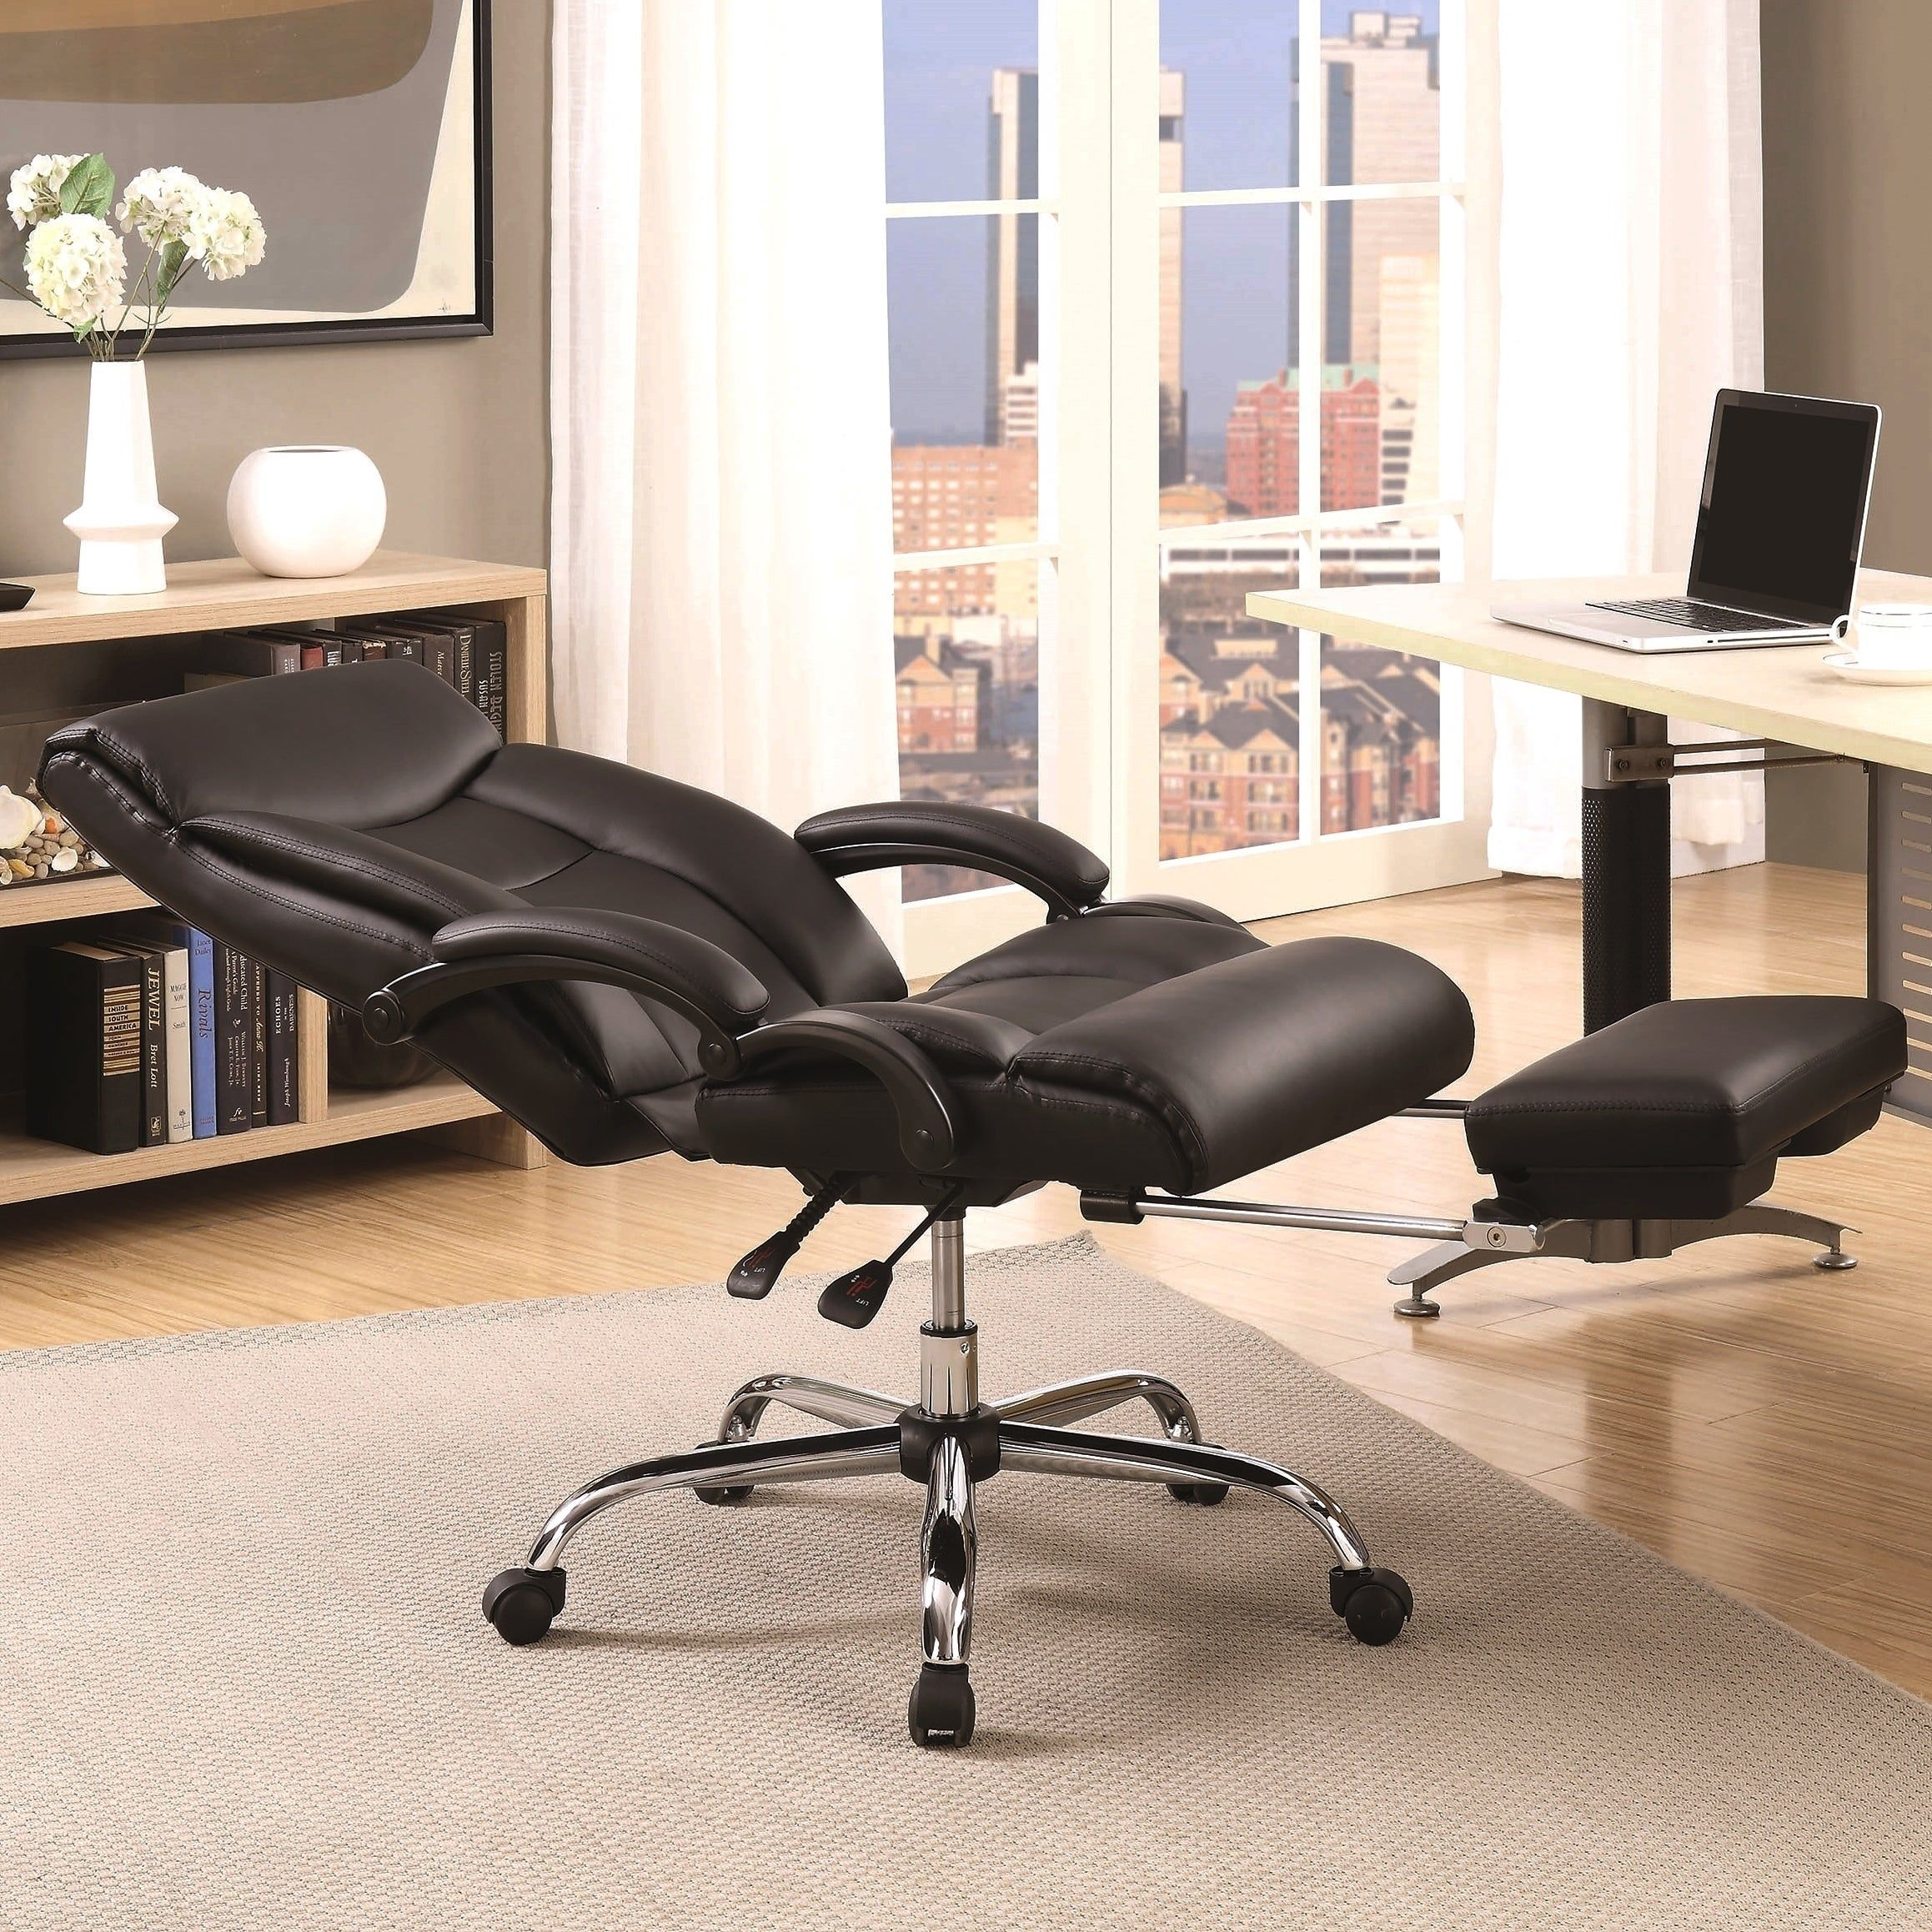 Executive Adjustable Black Reclining Office Chair With Footrest And Chrome Base Black Reclining Office Chair Furniture Swivel Office Chair